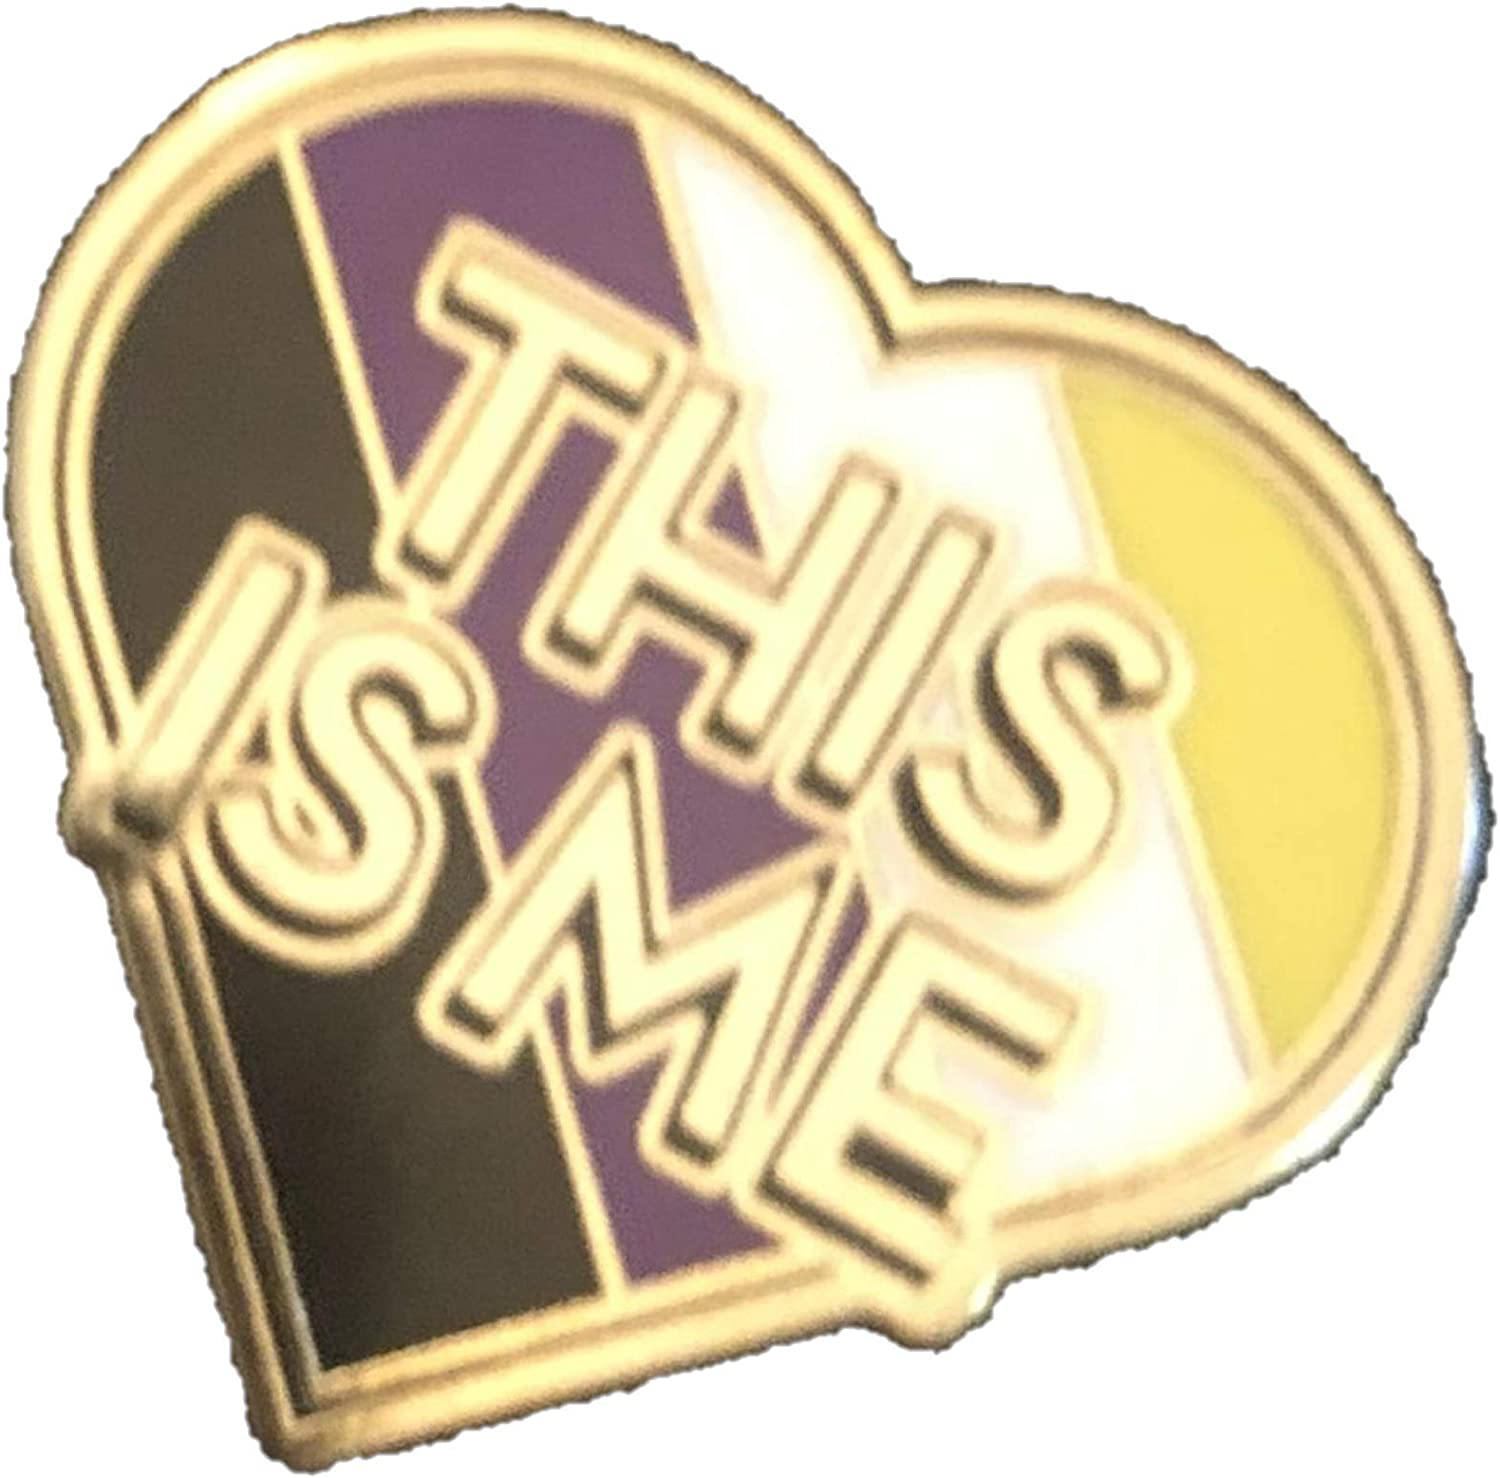 Nonbinary Pride Flag This Is Me Heart Shaped Enby Enamel Pin